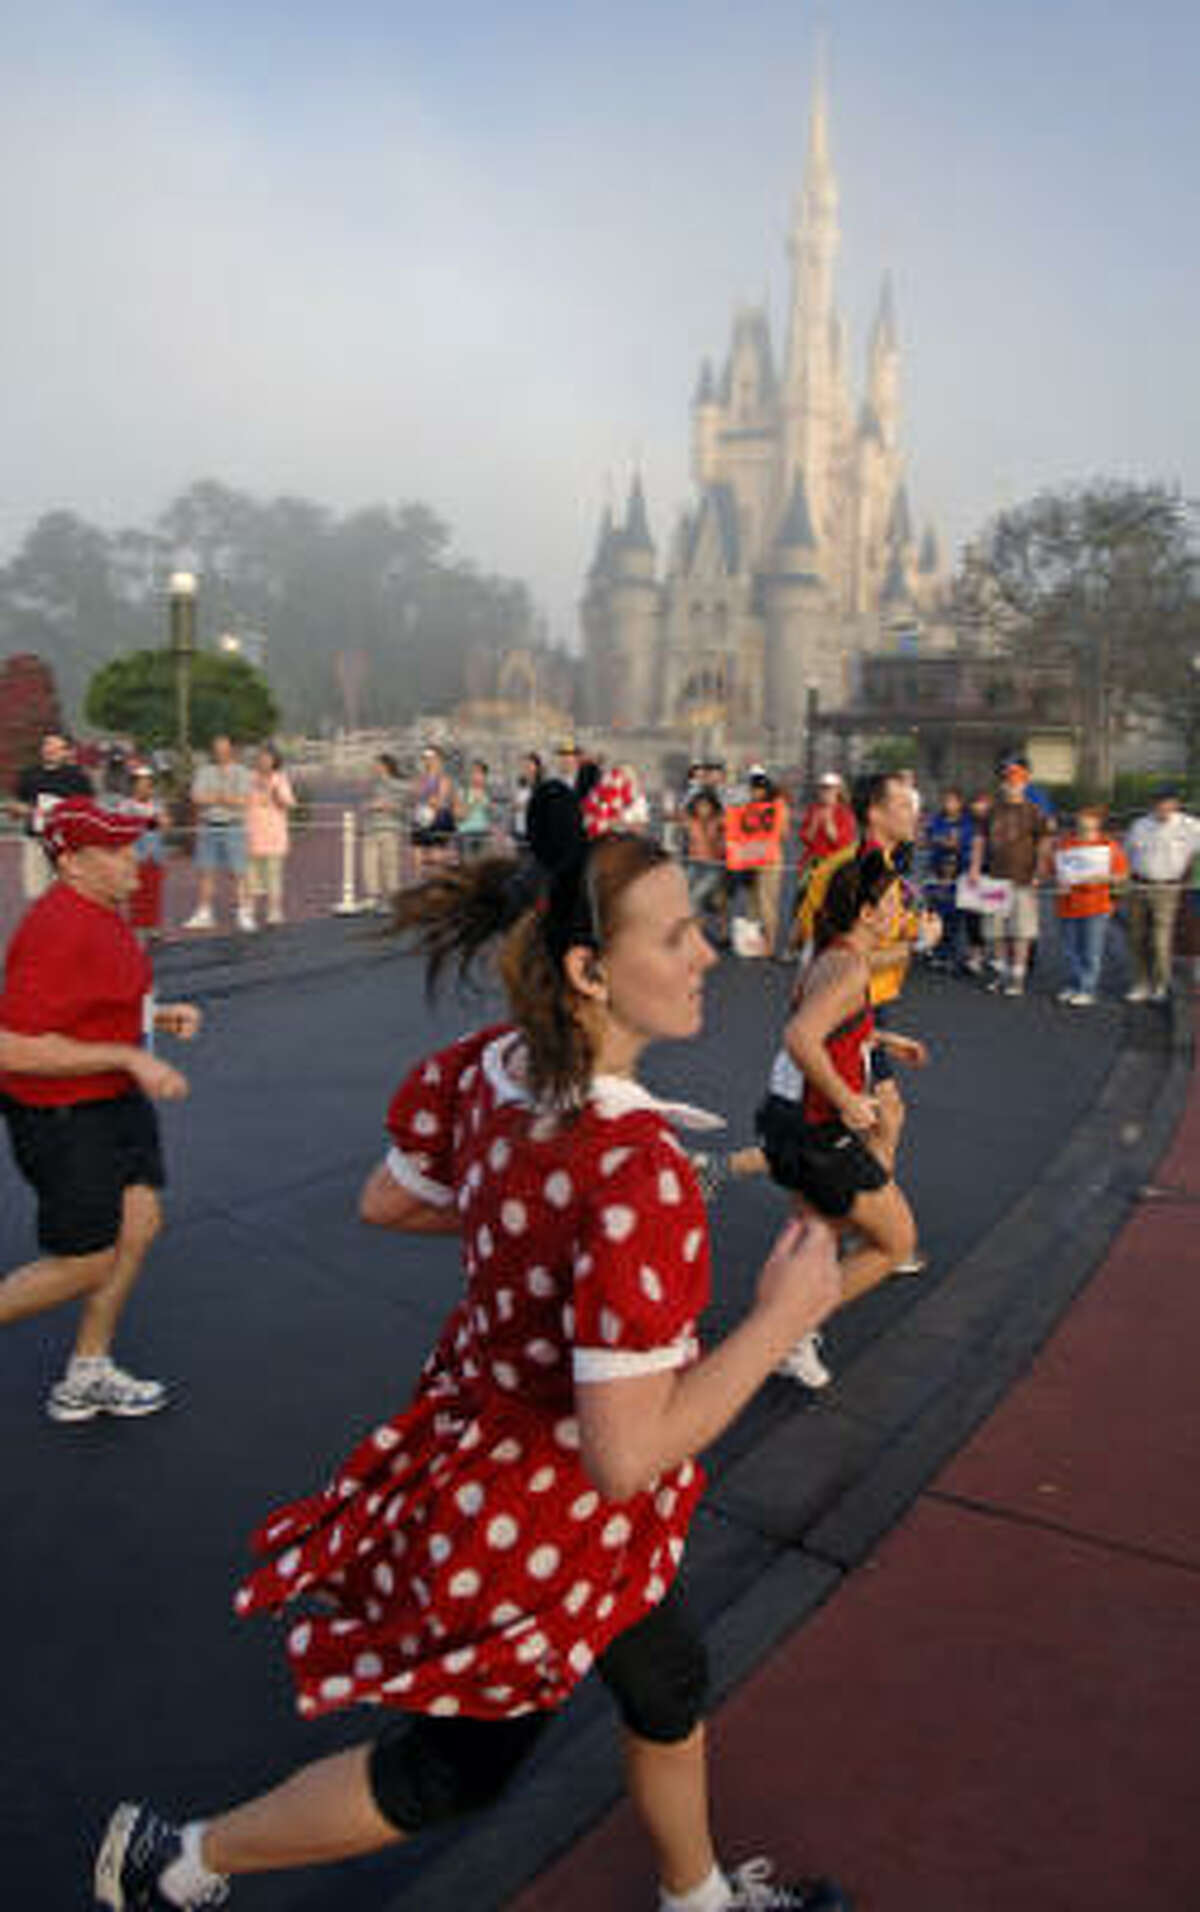 It's 26.2 miles of magic as distance runners of all ages - and outfits - celebrate Walt Disney World Marathon Weekend.